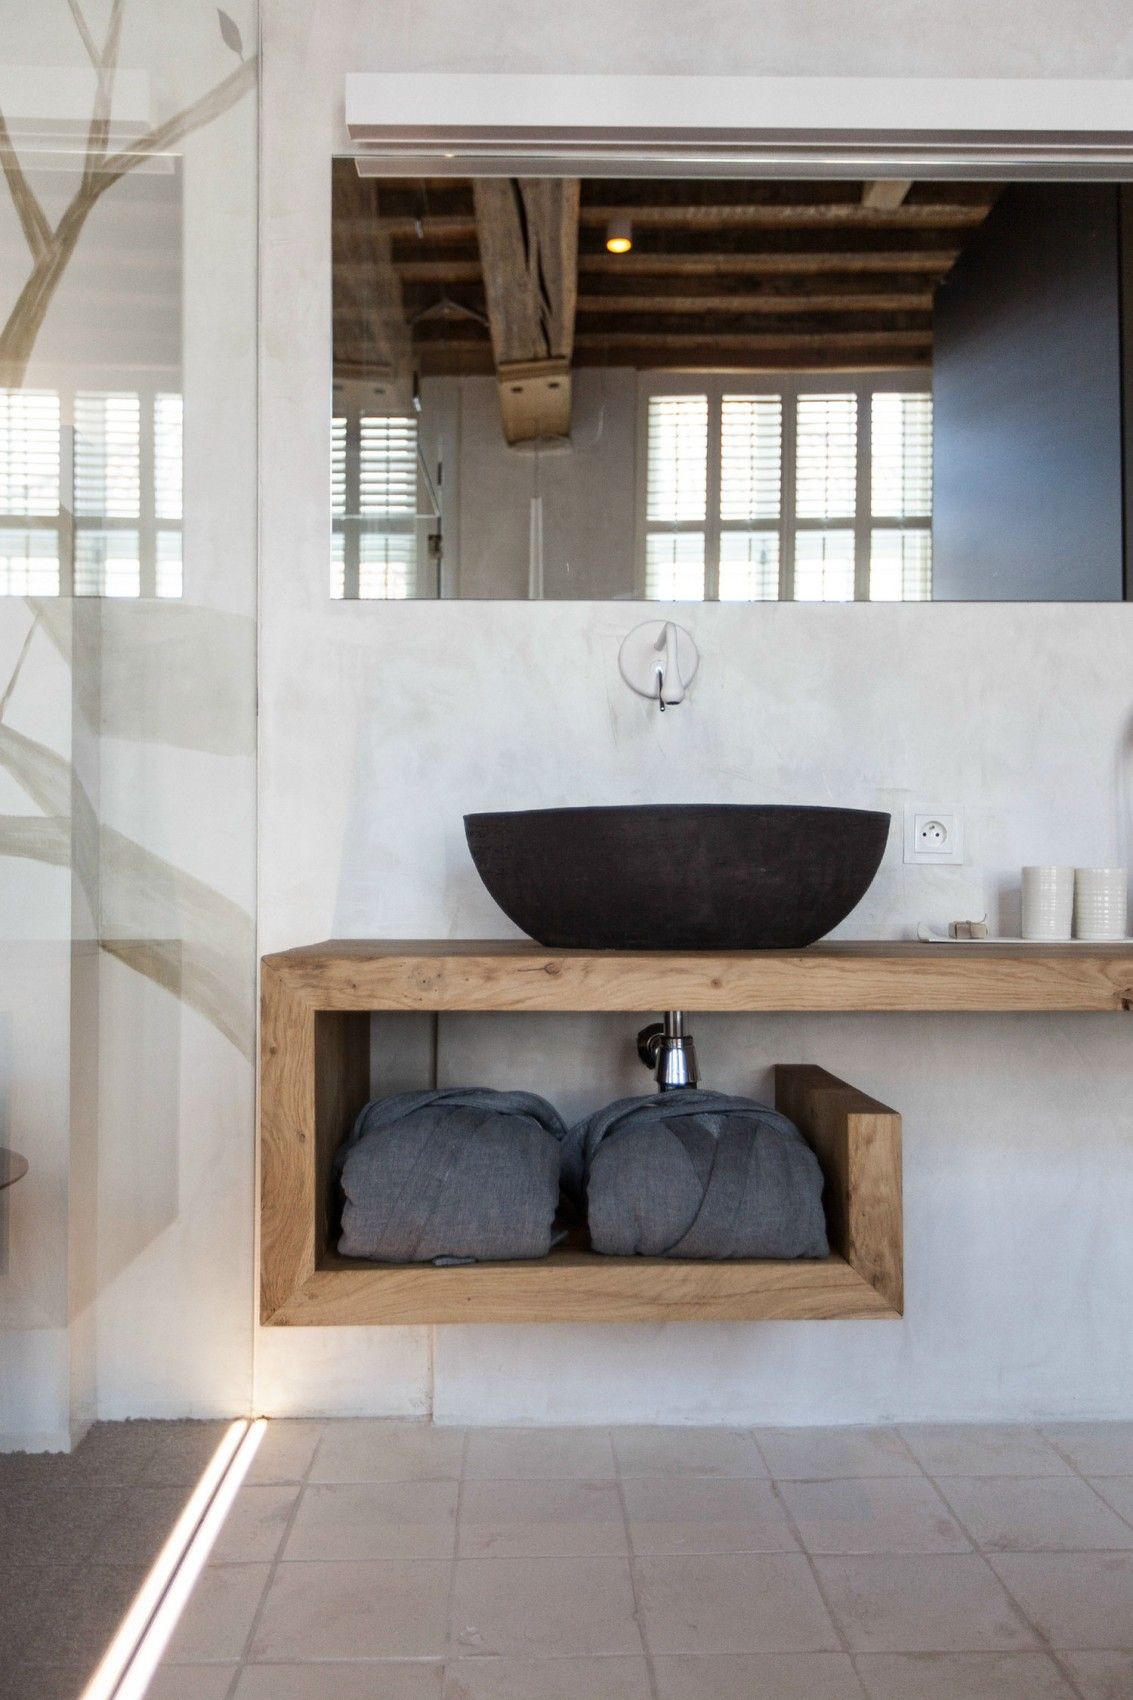 Love The Rustic Zen Elements In This Bathroom Look Nice Colors Textures And